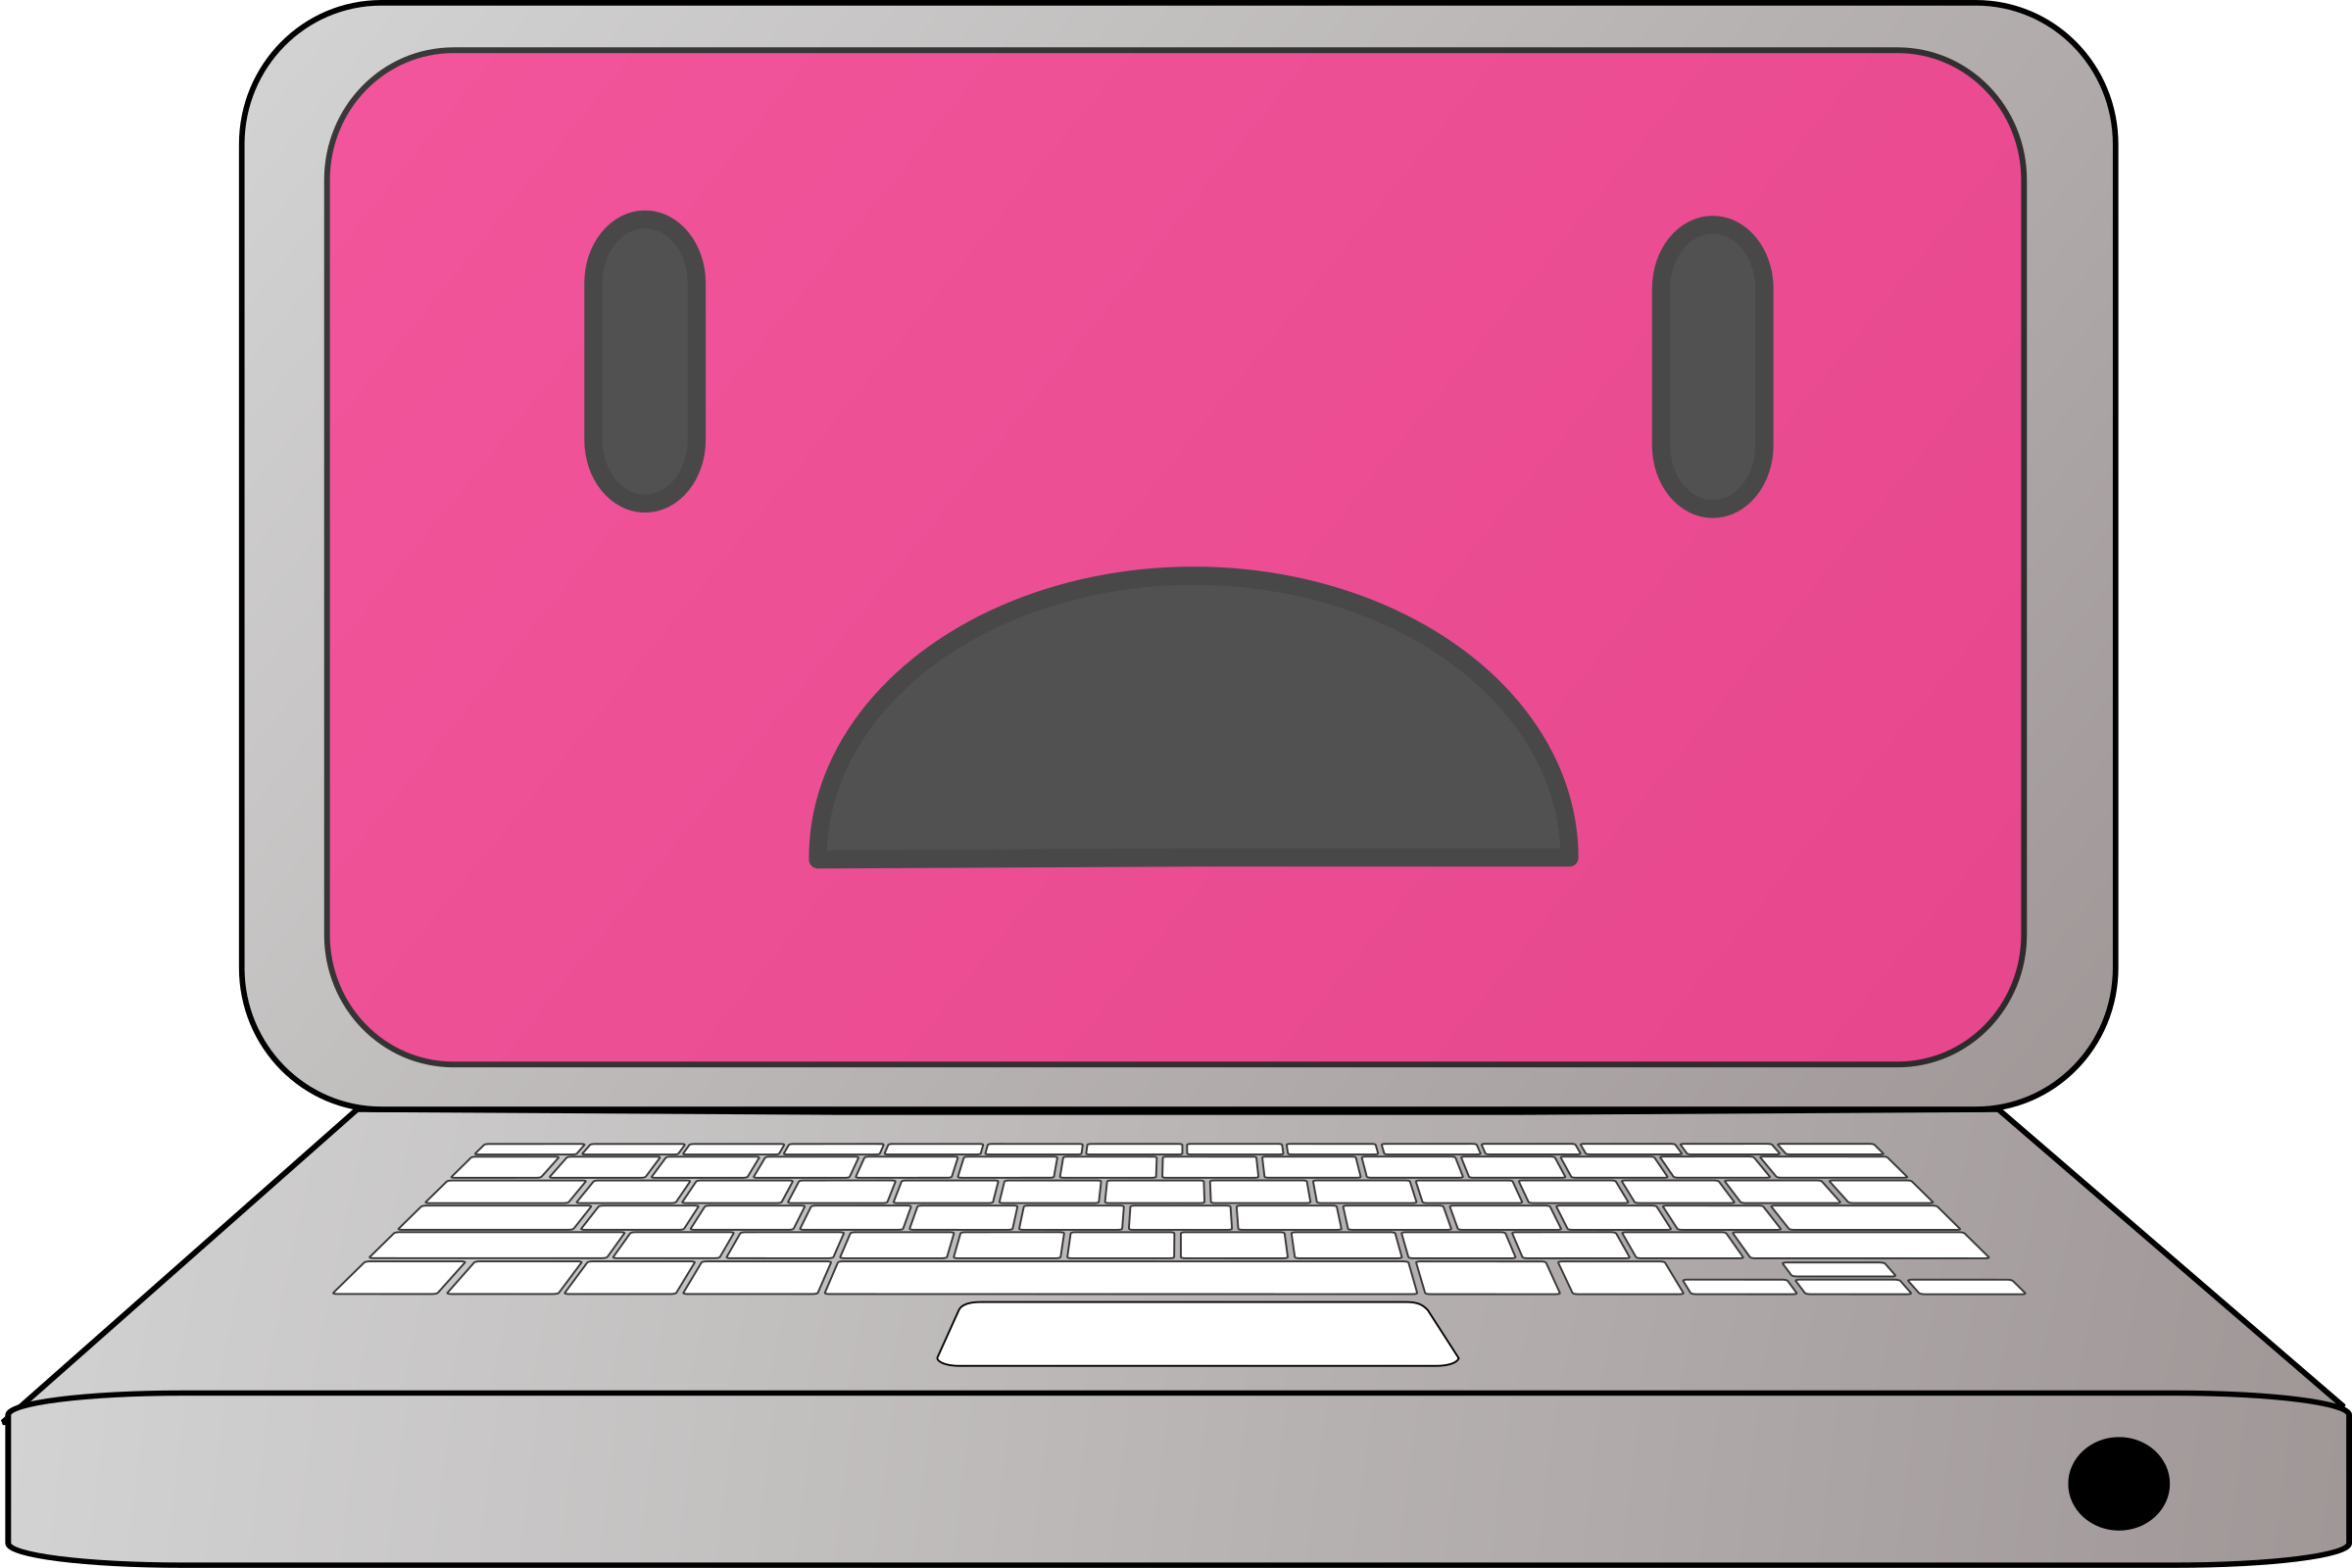 Sad laptop by anarres